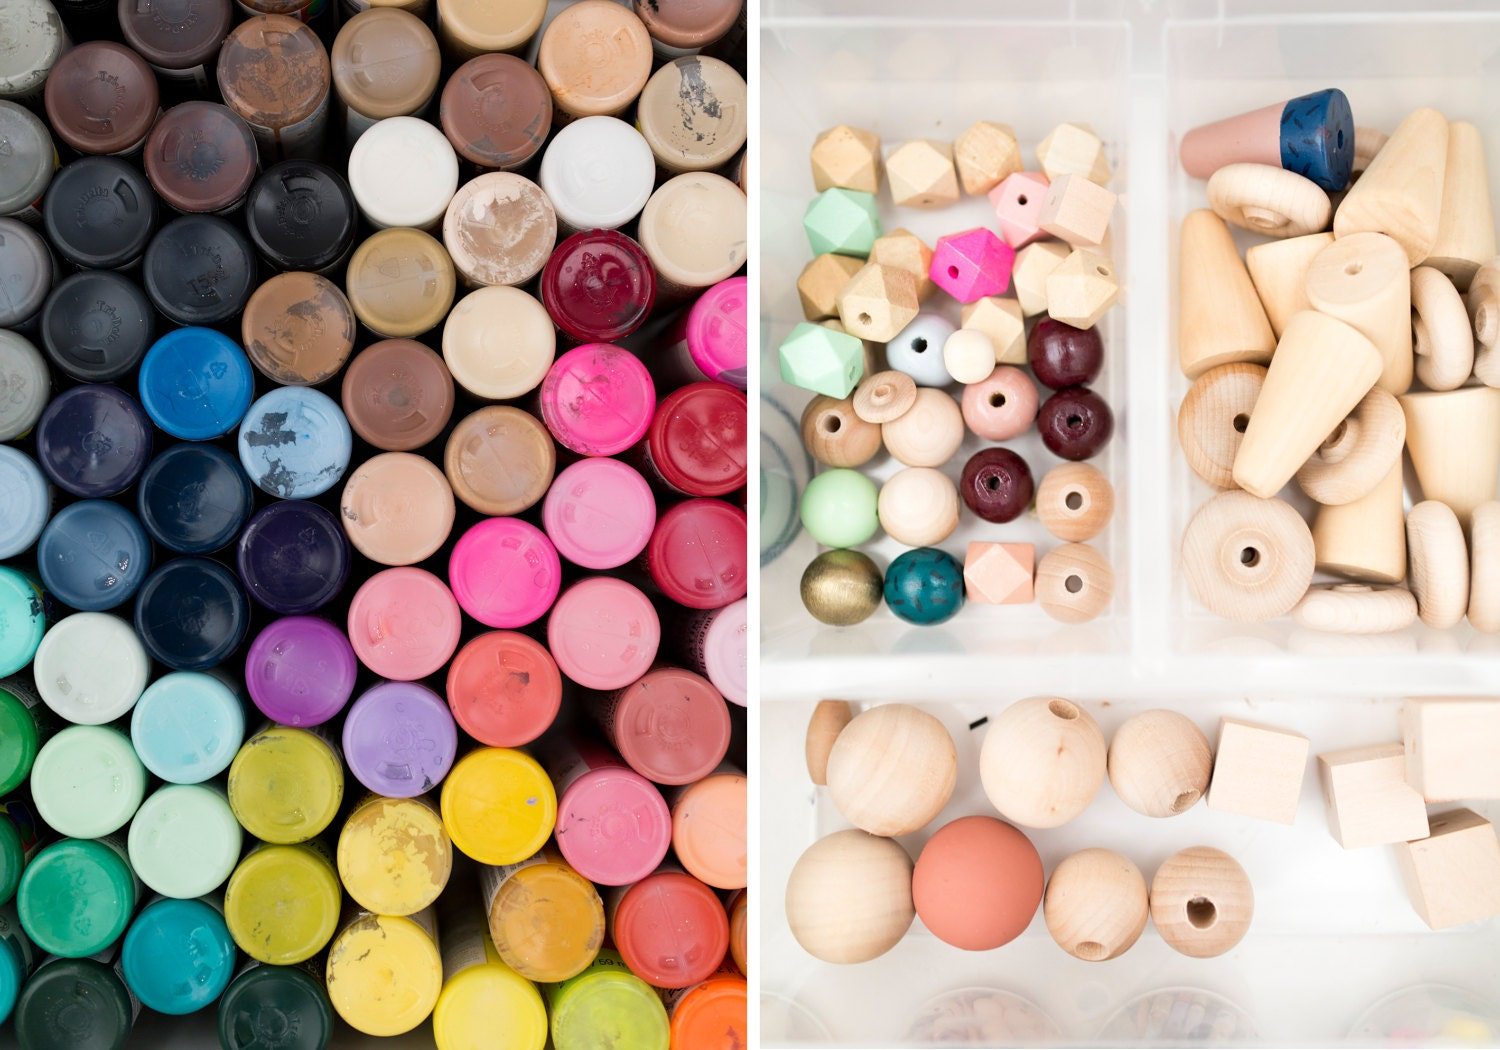 Craft paints and wooden beads